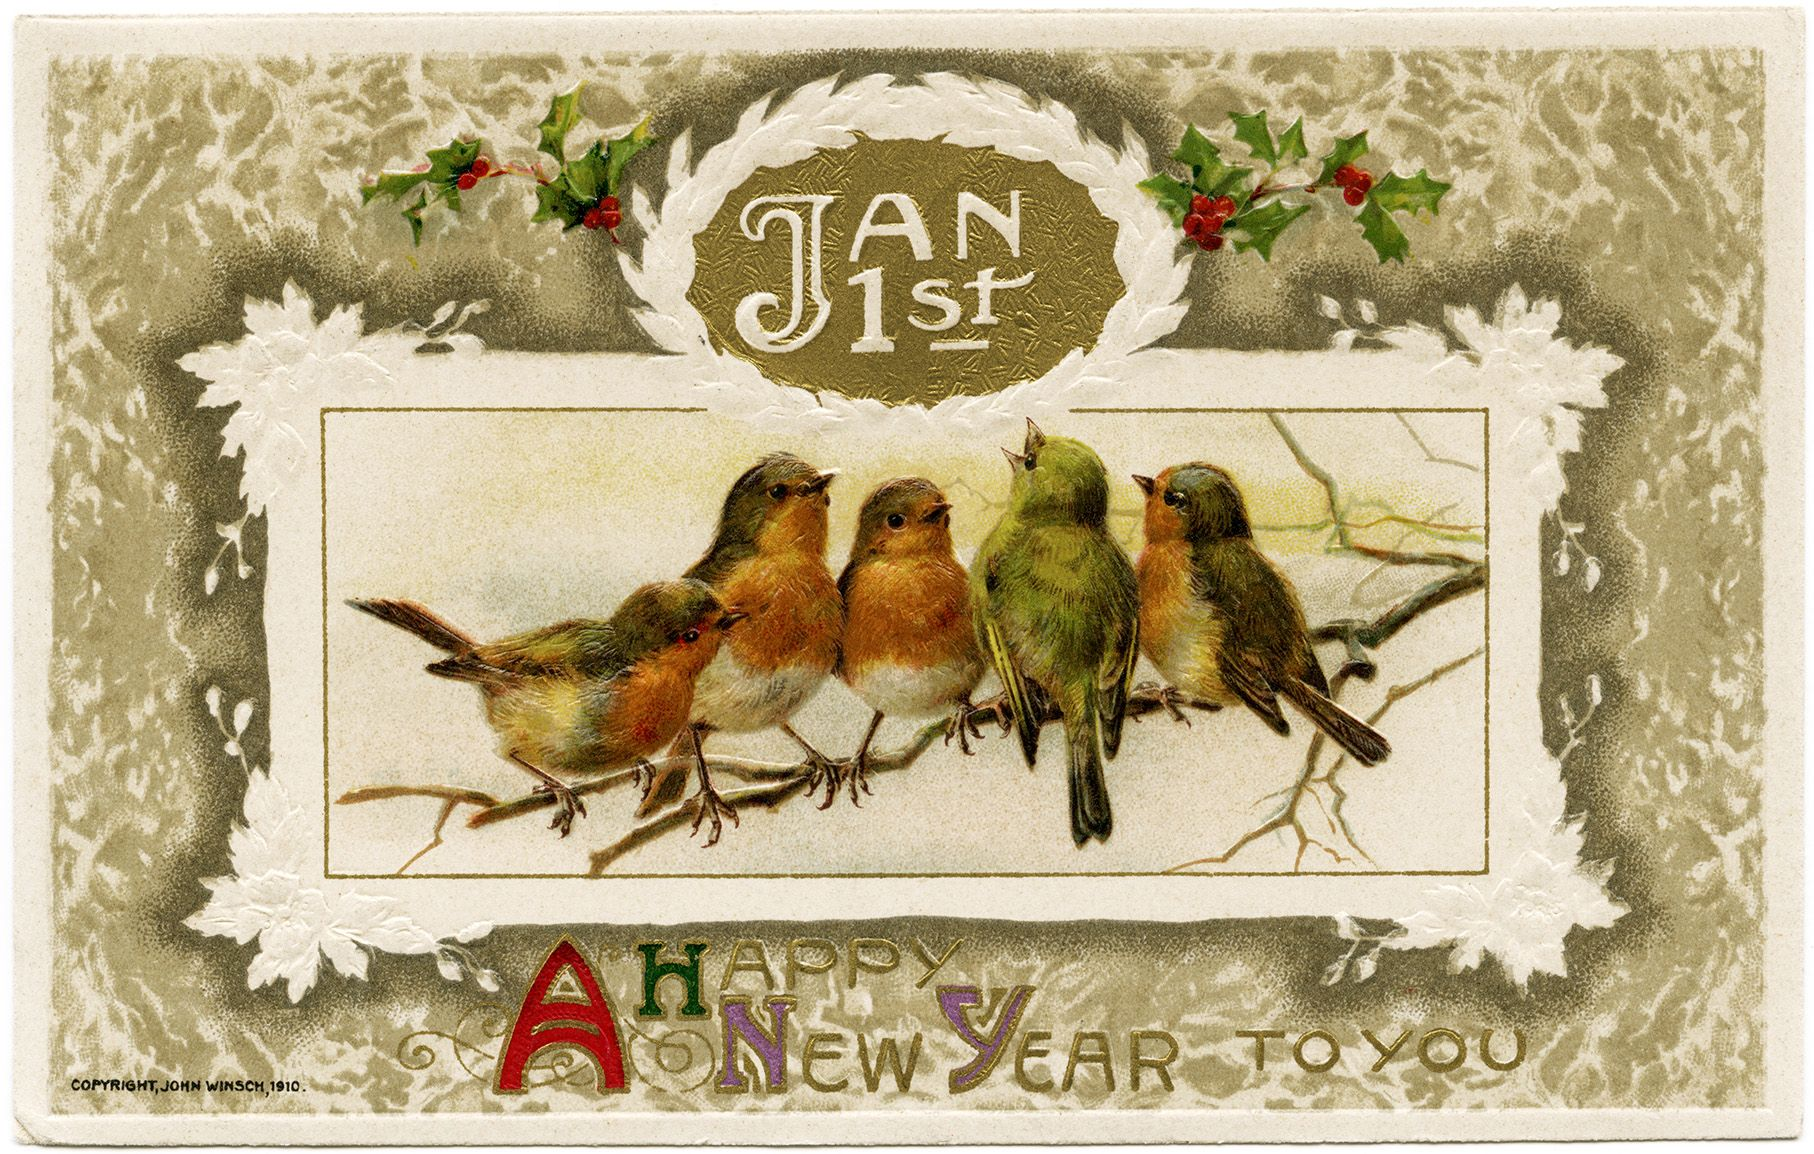 vintage new years cards free free vintage image john winsch birds new year postcard old design